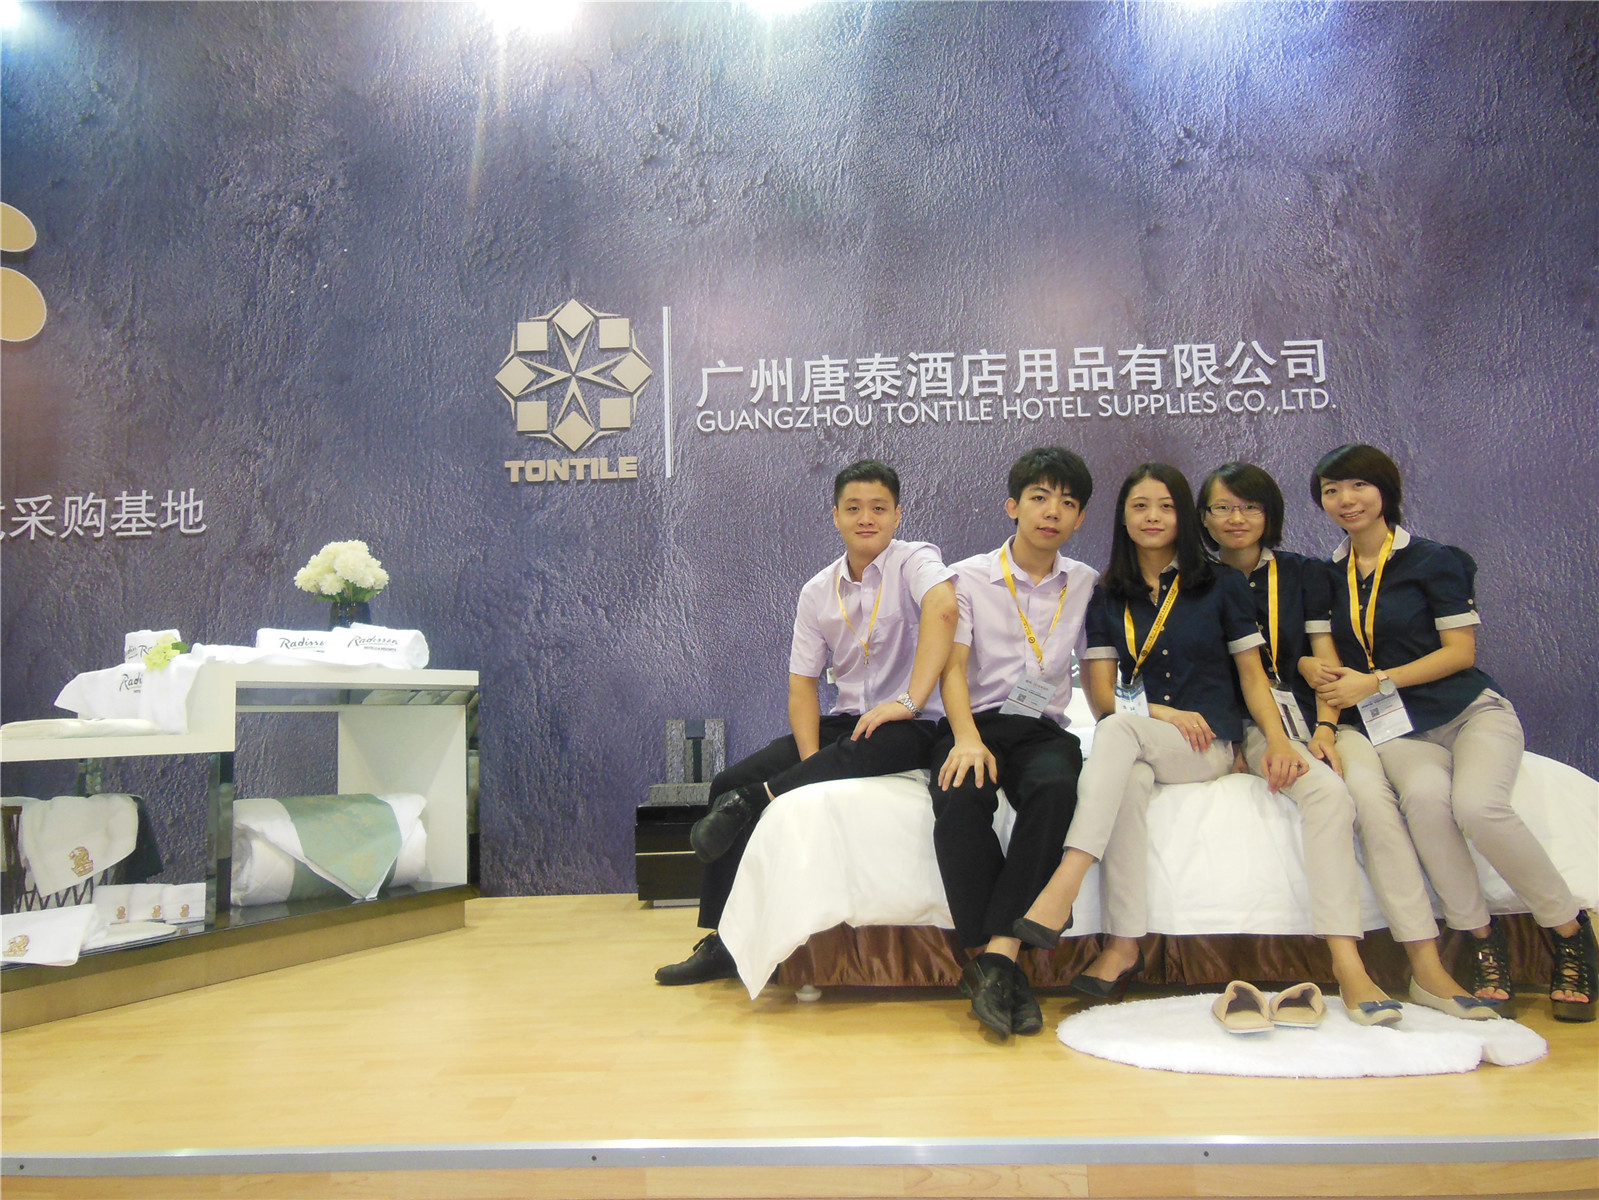 Guangzhou pazhou exhibition-Tontile Team 1